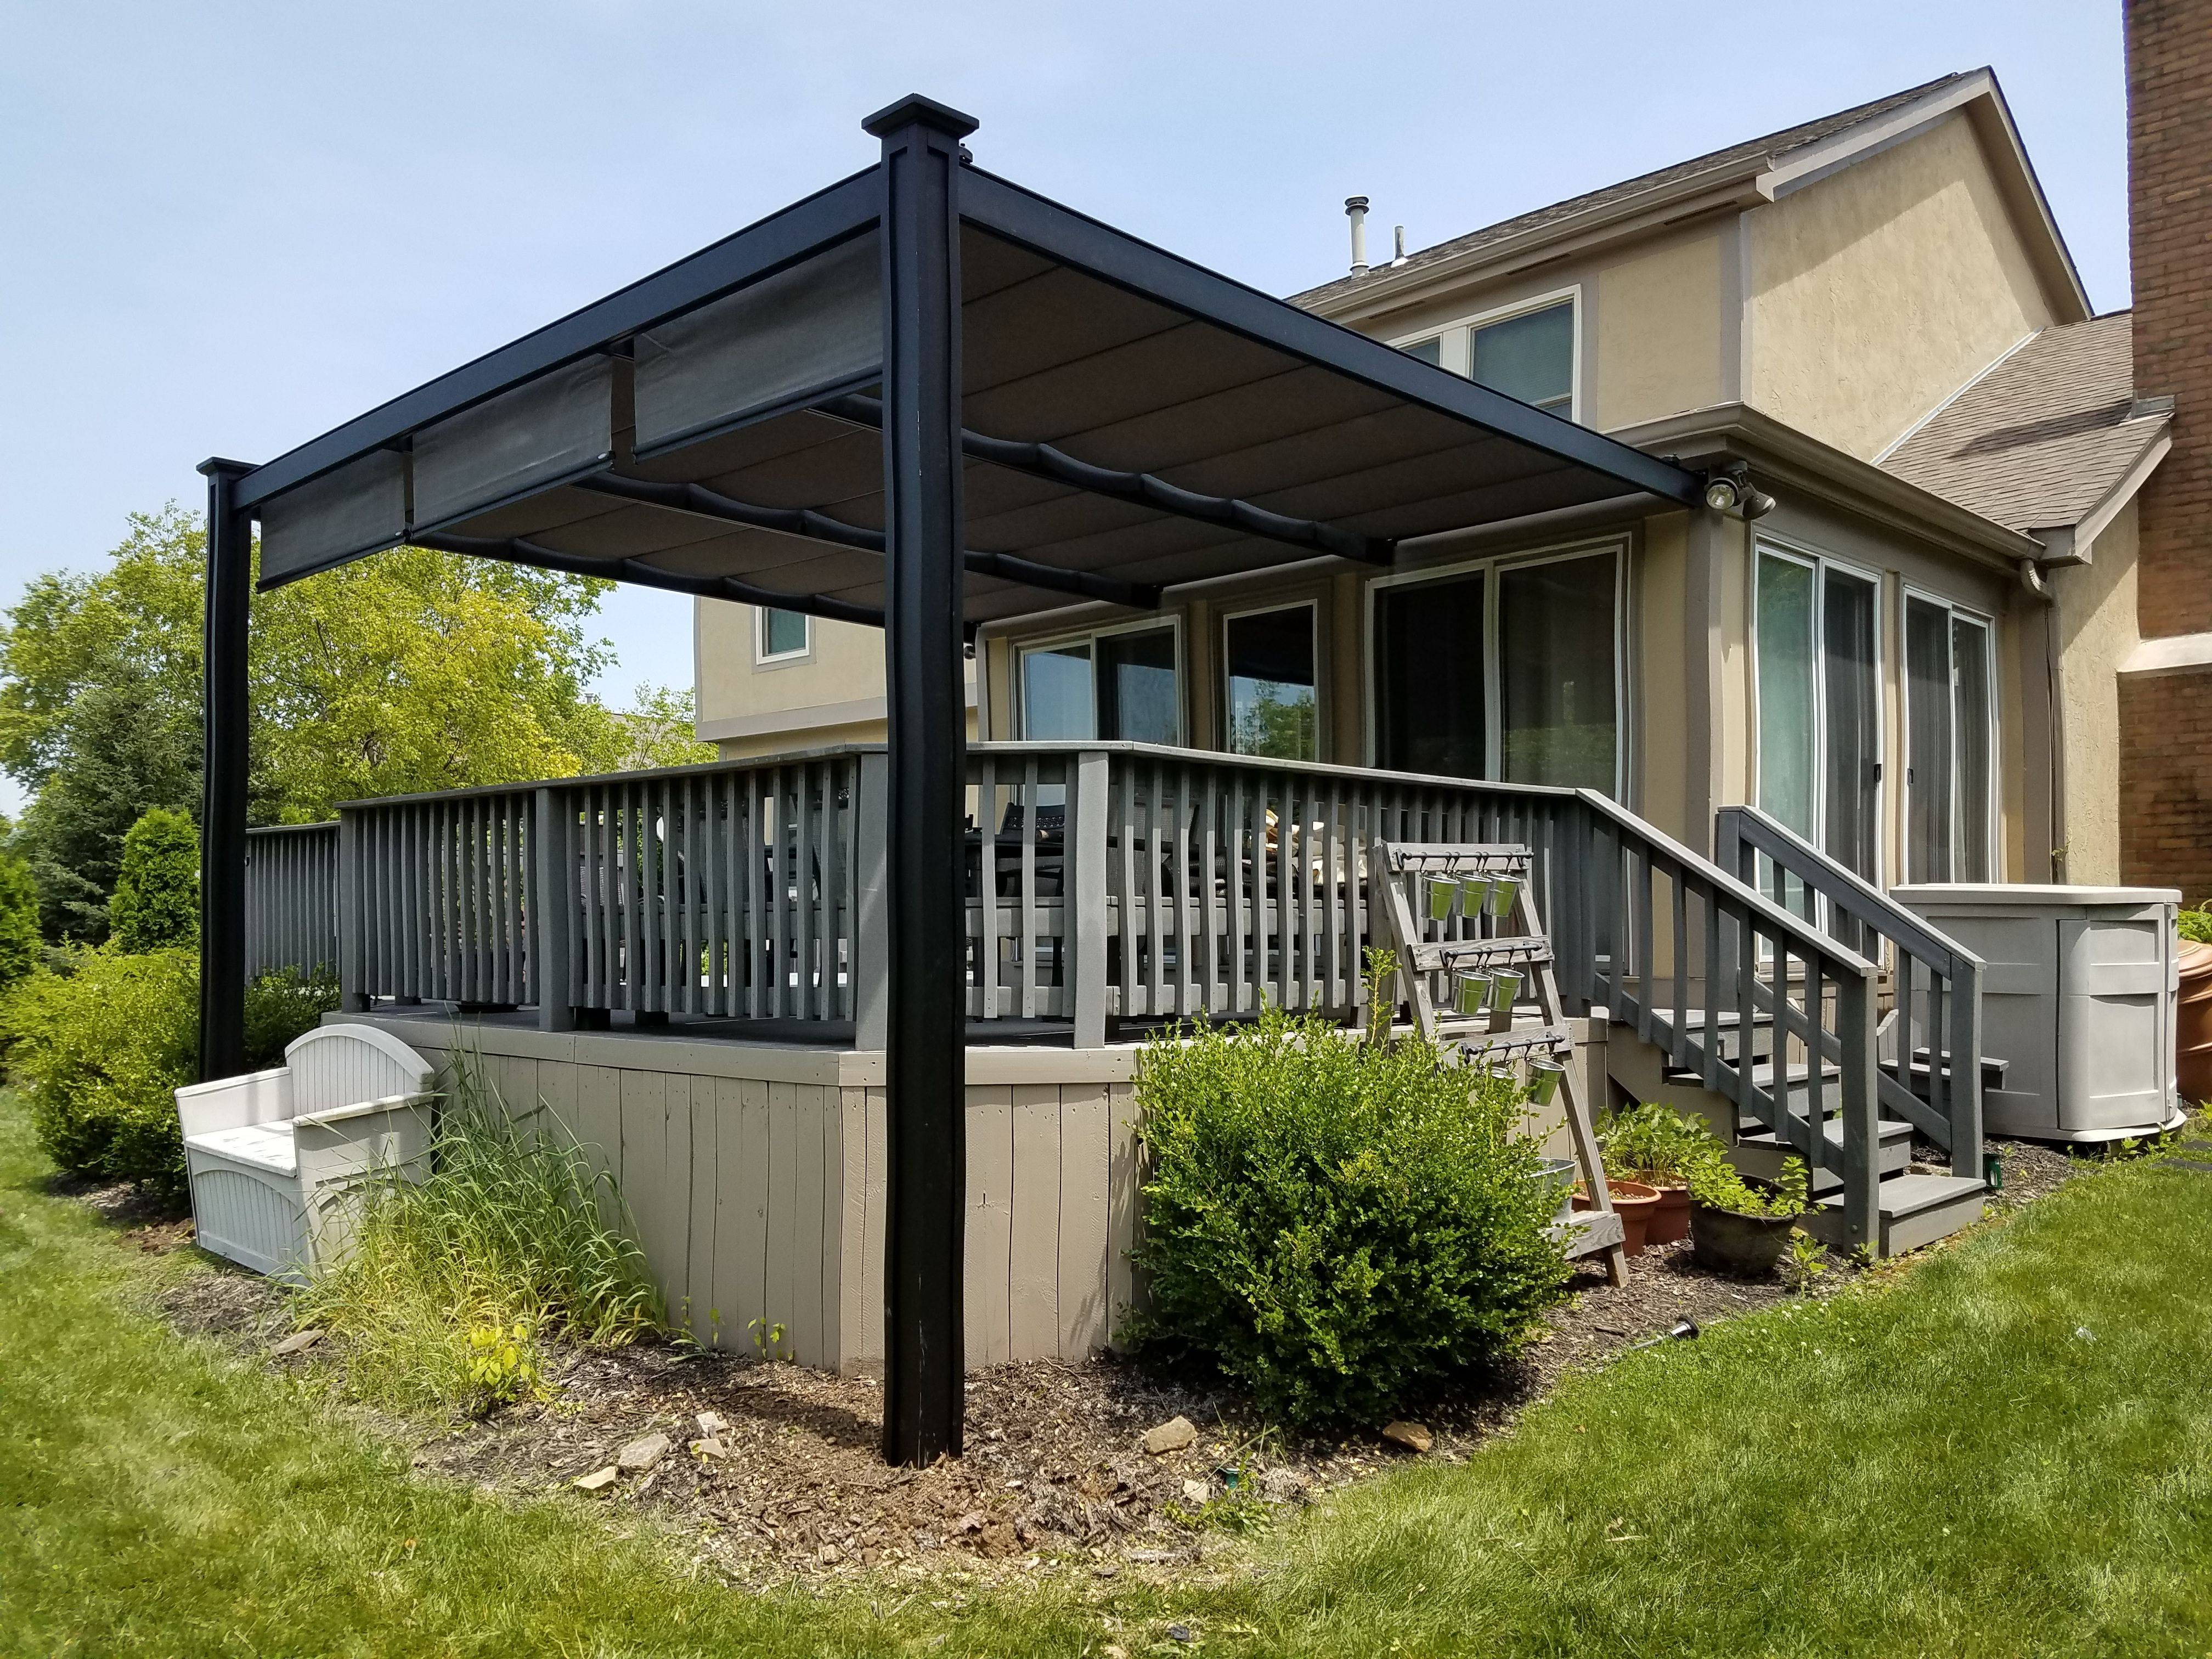 Attached Aluminum Bungalow Covering Existing Deck With Retractable Shade Retractable Pergola Canopy Retractable Pergola Pergola Canopy